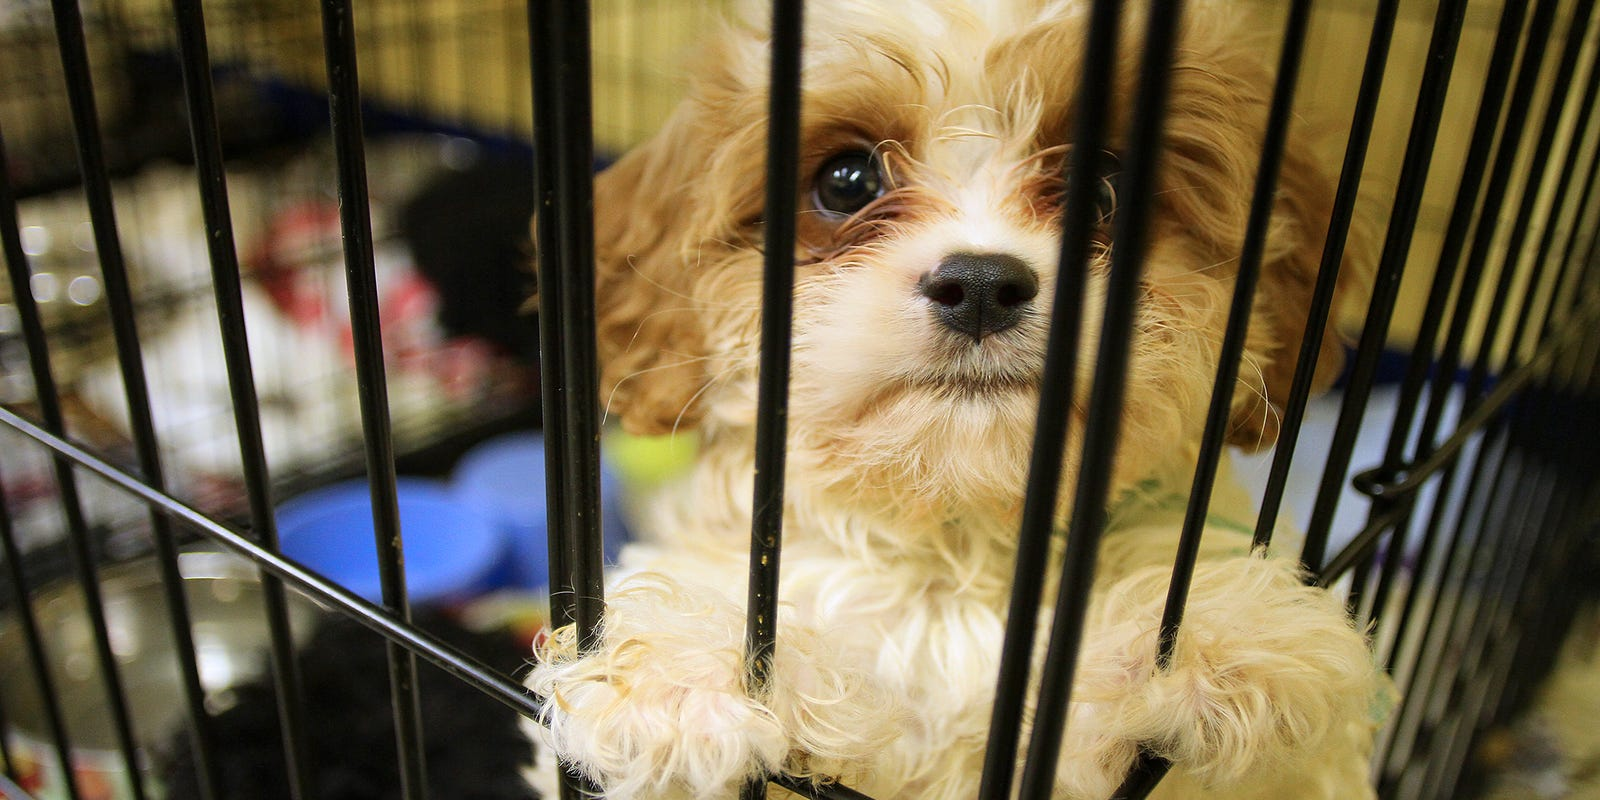 Does Wayne County have a puppy mill problem?